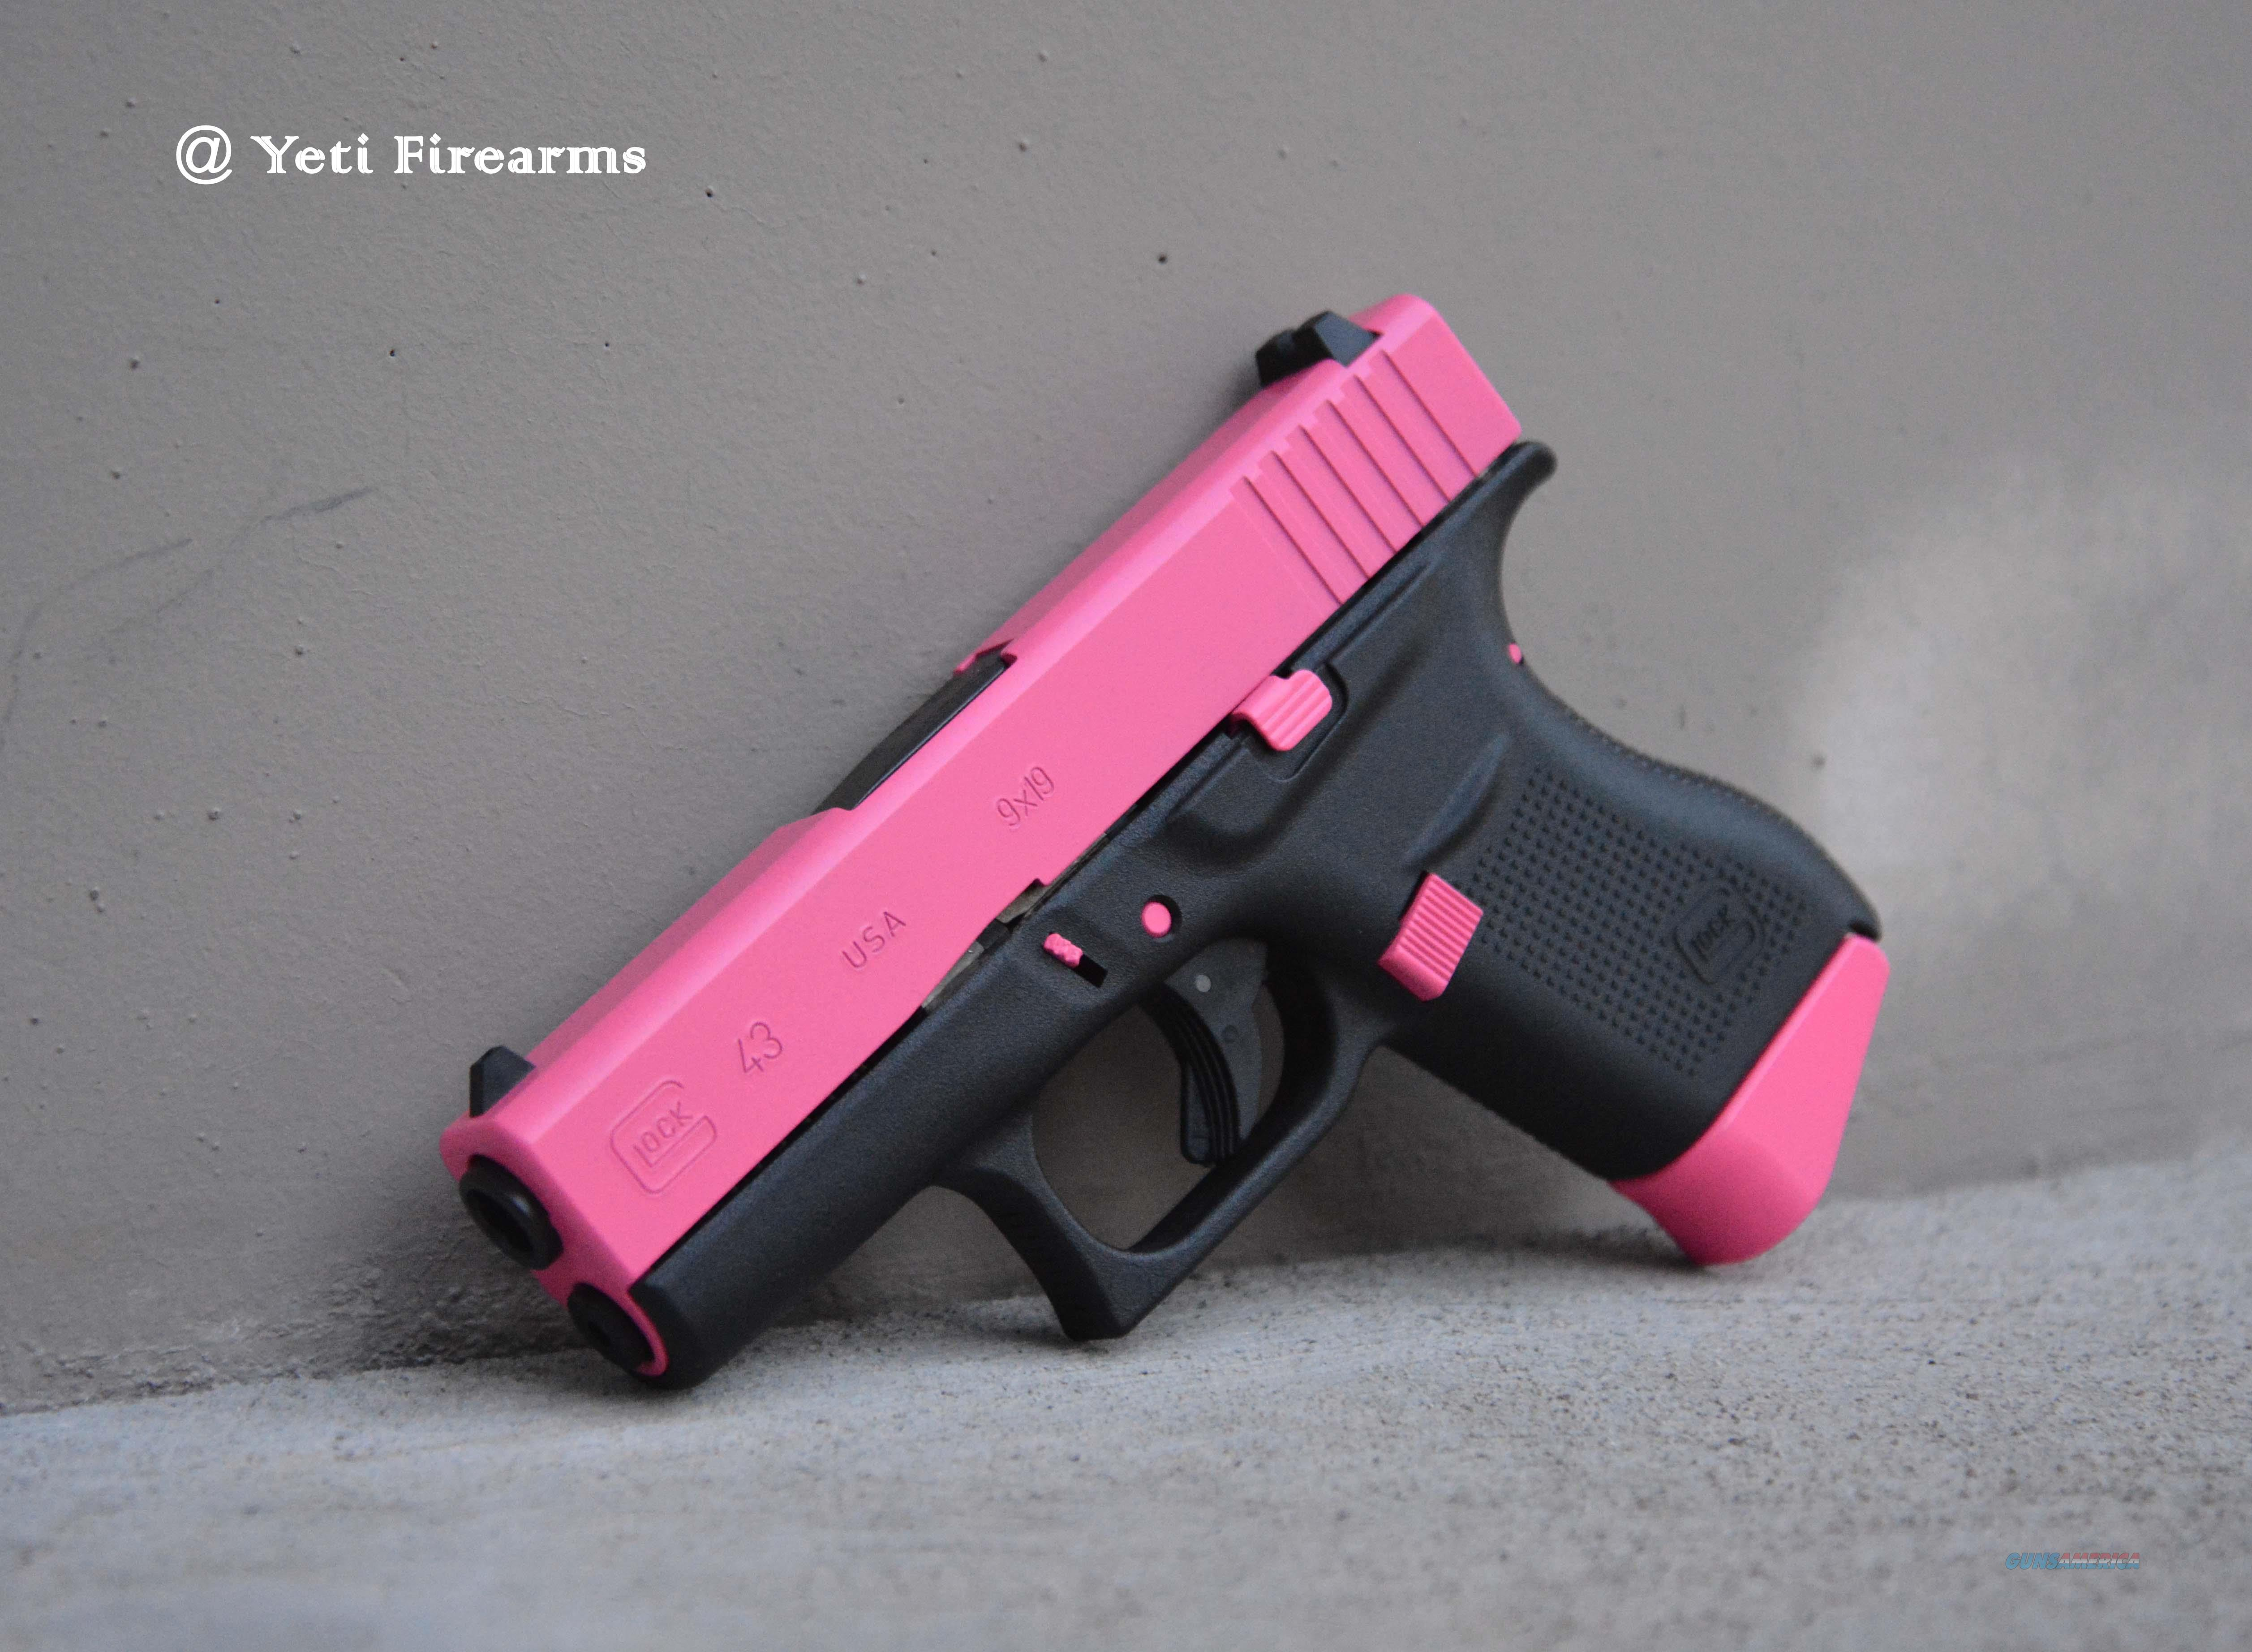 X-Werks Glock 43 Hot Pink 9mm 2 Mags No CC Fee  Guns > Pistols > Glock Pistols > 43